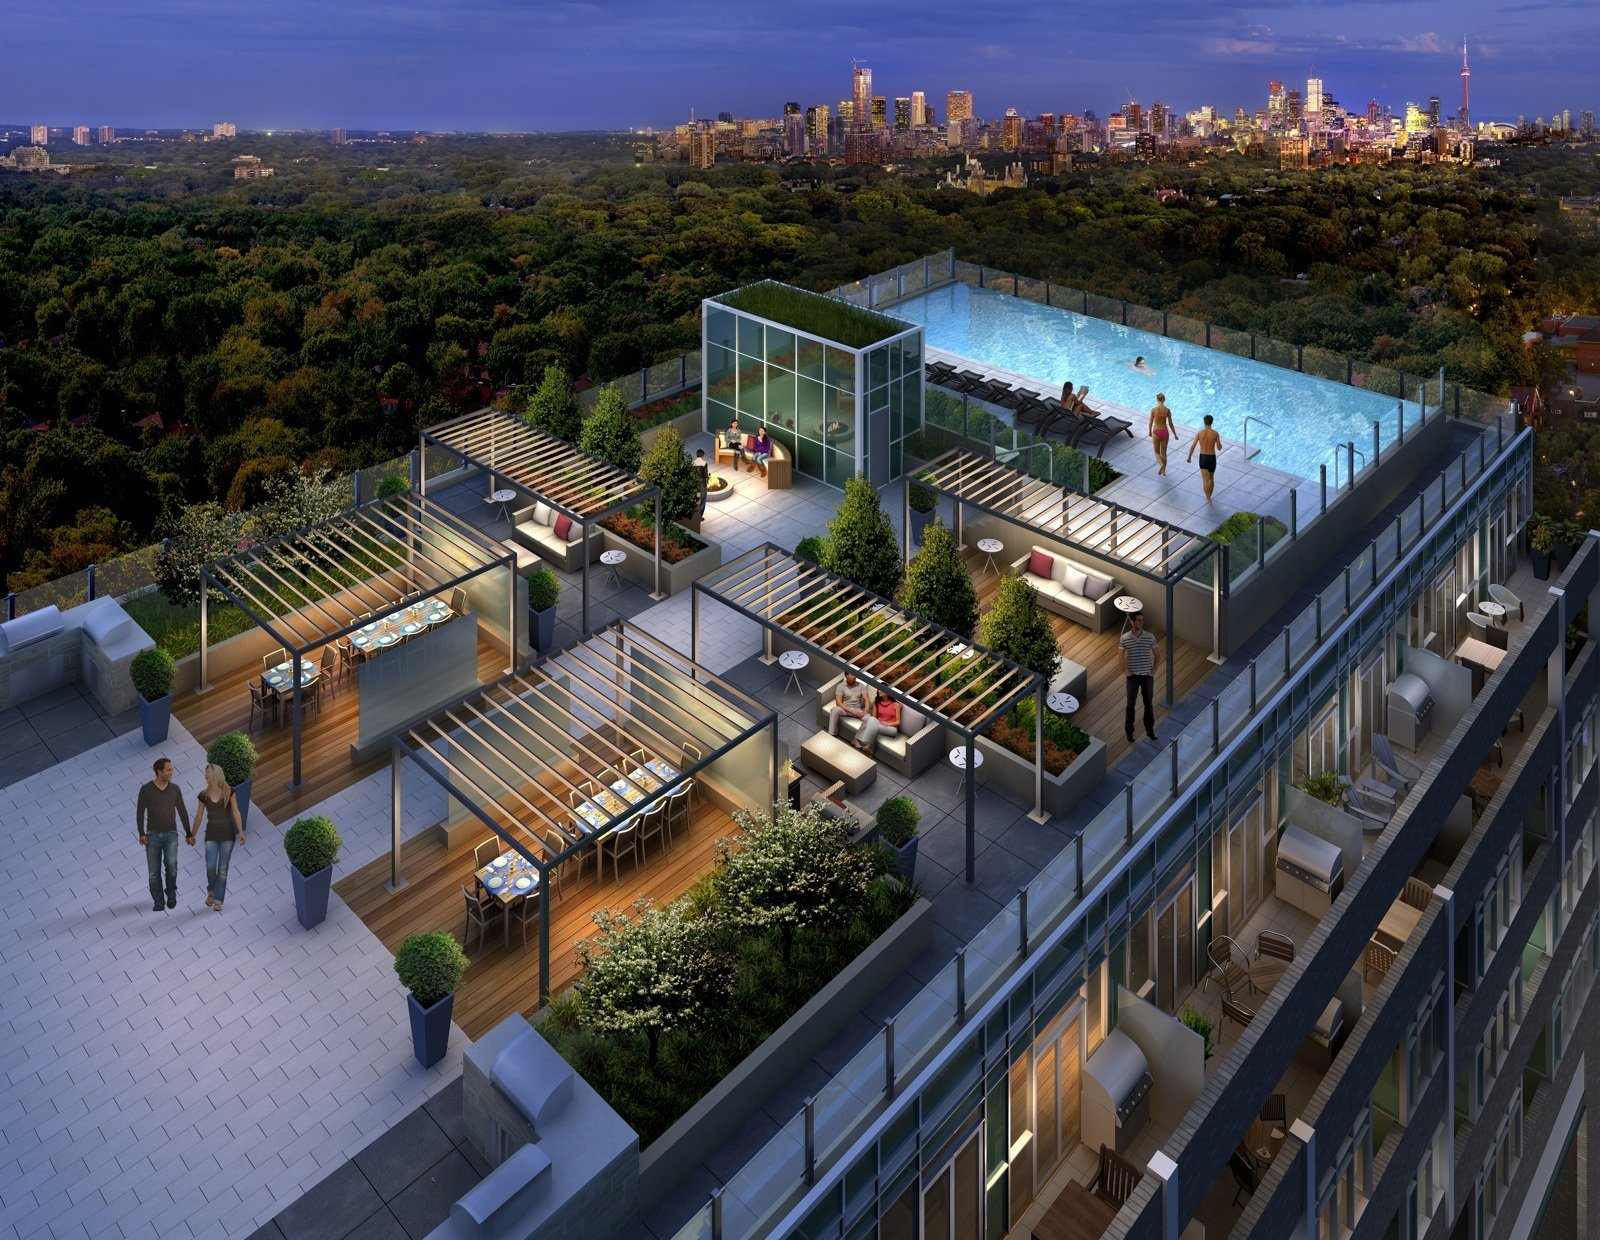 Terrace Pools infinity pool at rise condos - so awesome | favorite condo